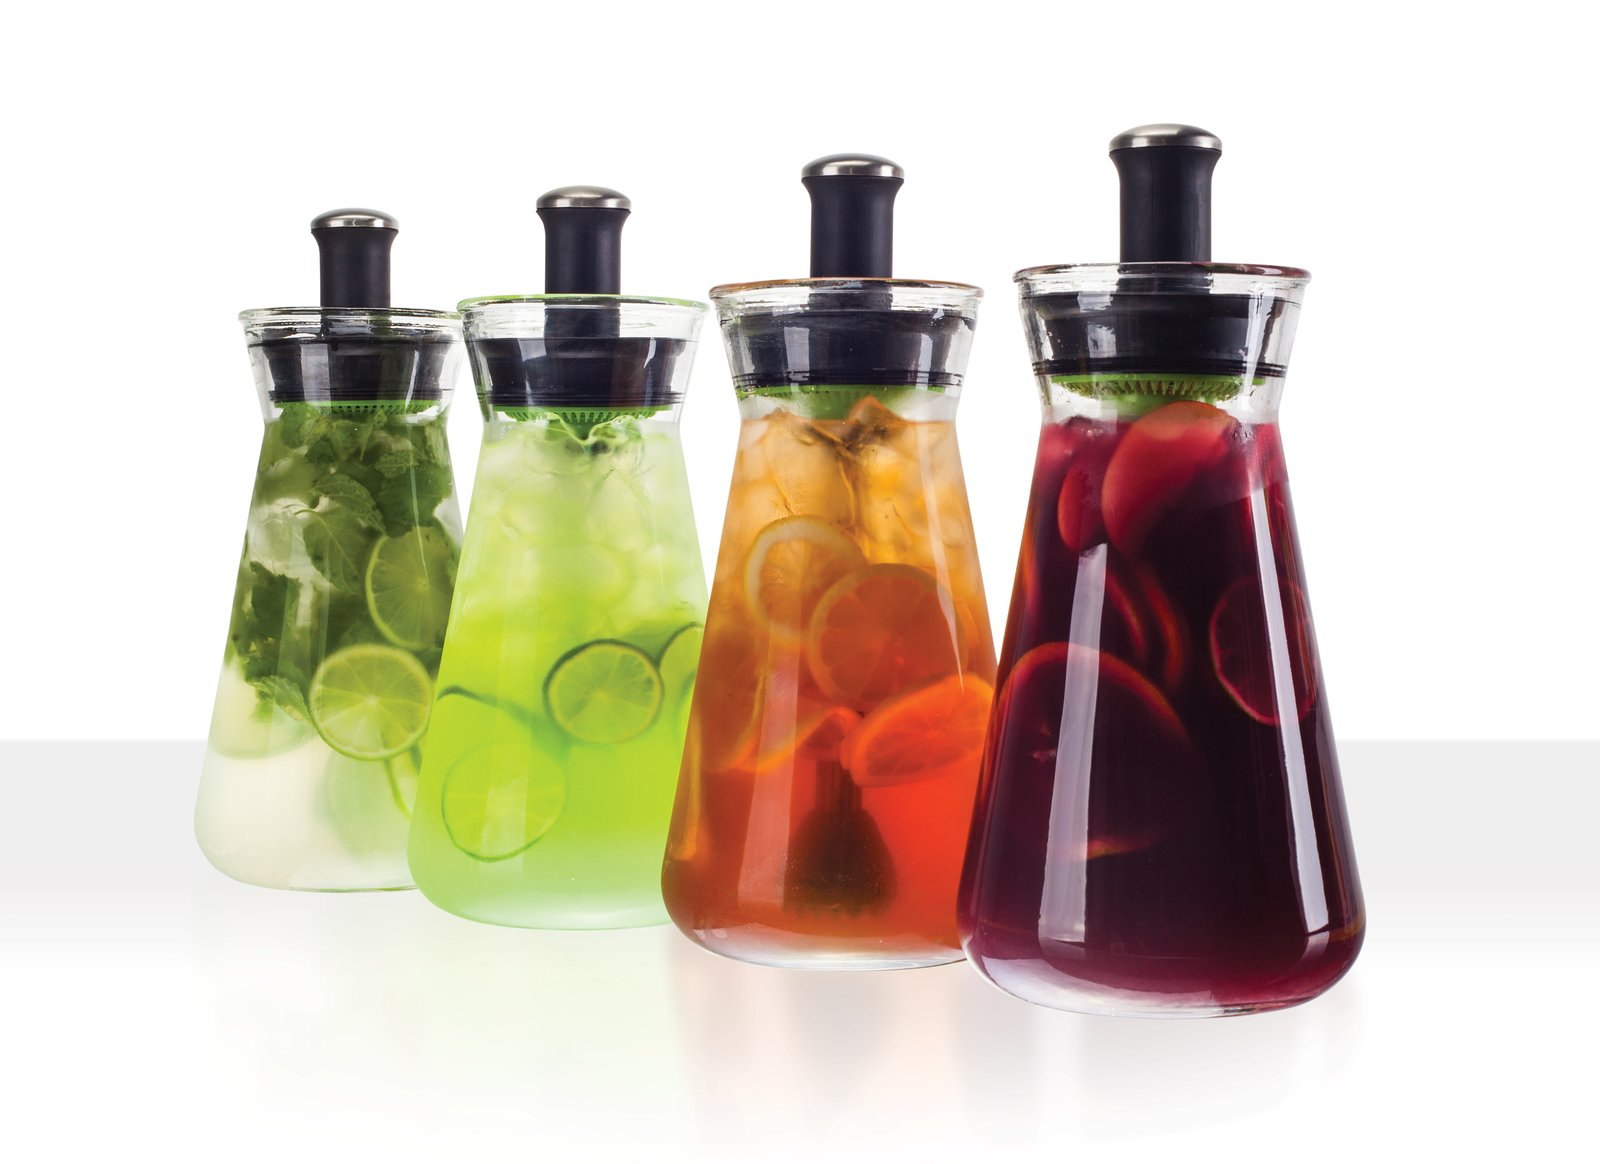 The Z54 carafe is a fresh and healthy alternative to HFCS soft drinks.  Muddle, mix and serve from the 54 oz glass carafe. Pulls after-hours duty on mojitos, sangria and margaritas.  zinganything.com